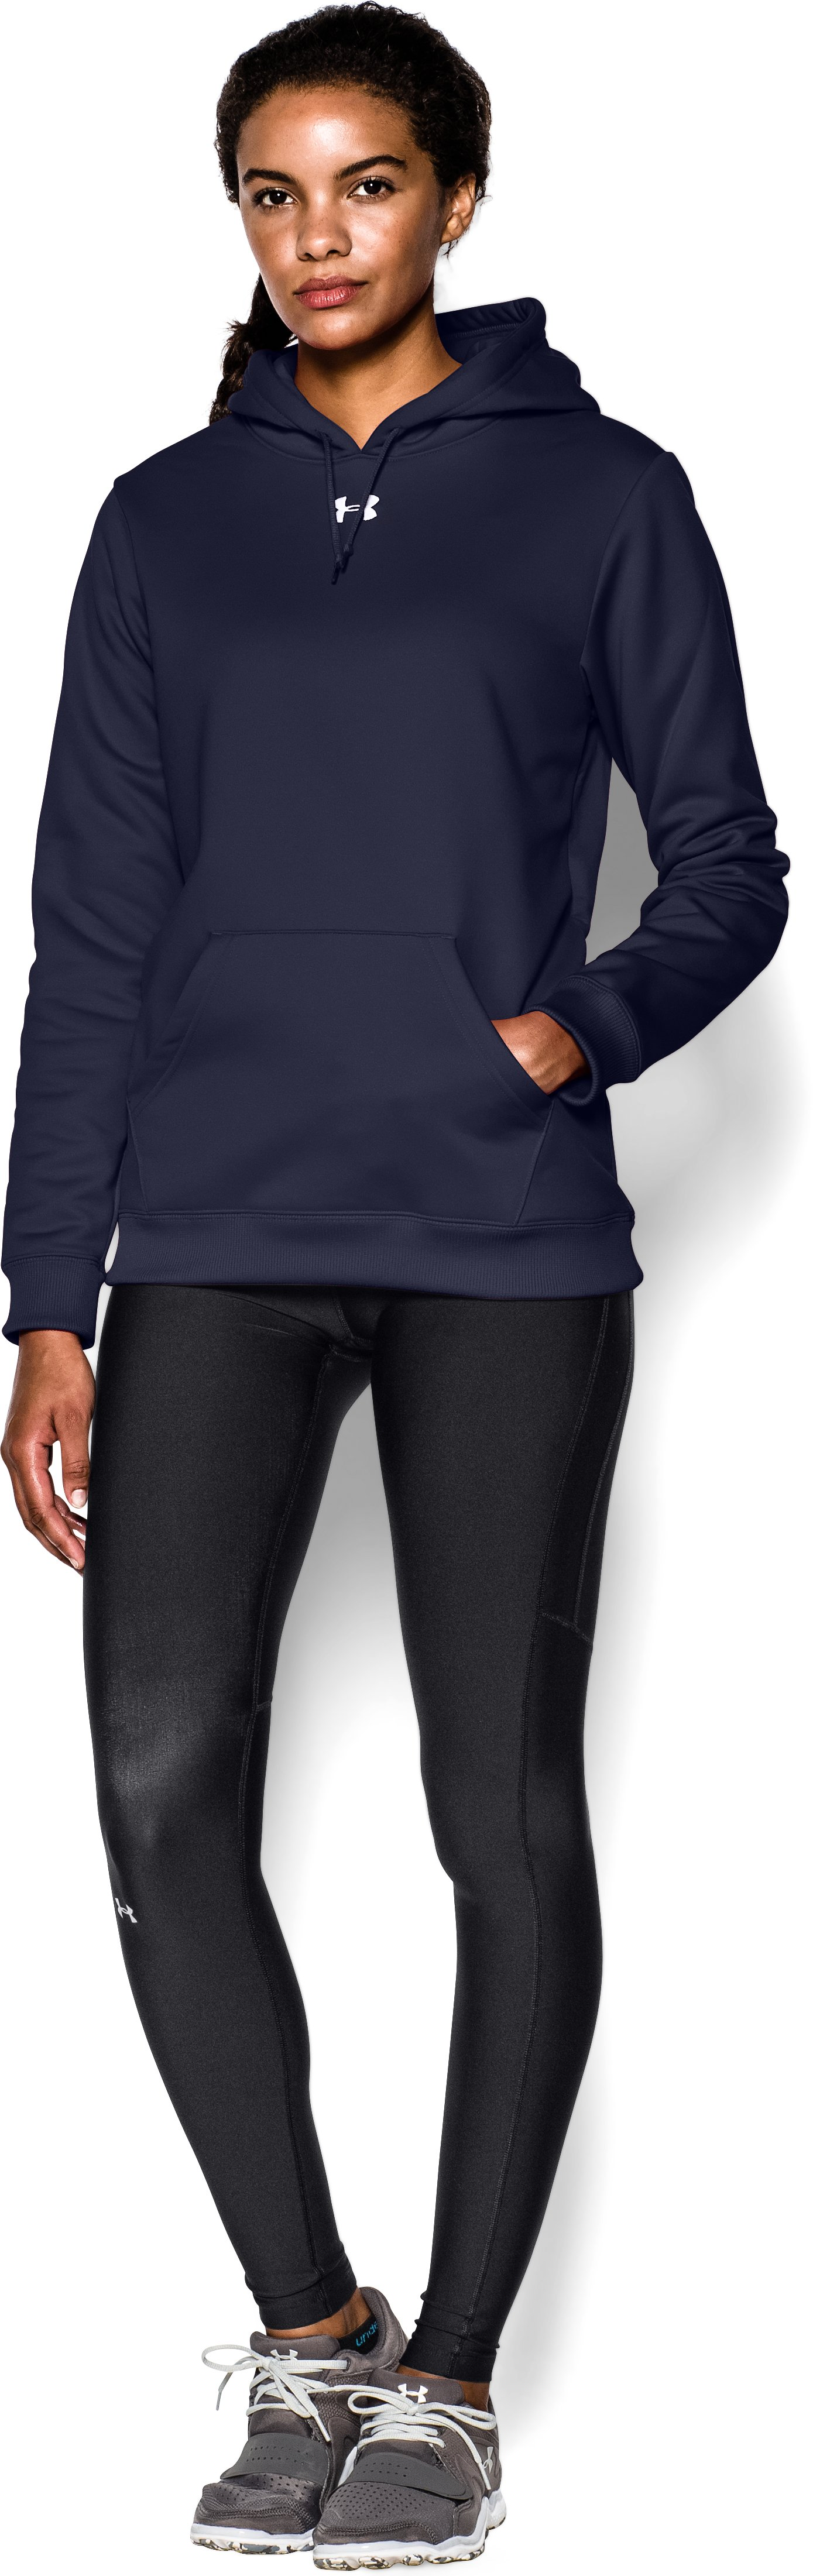 Women's Armour® Fleece Team Hoodie, Midnight Navy